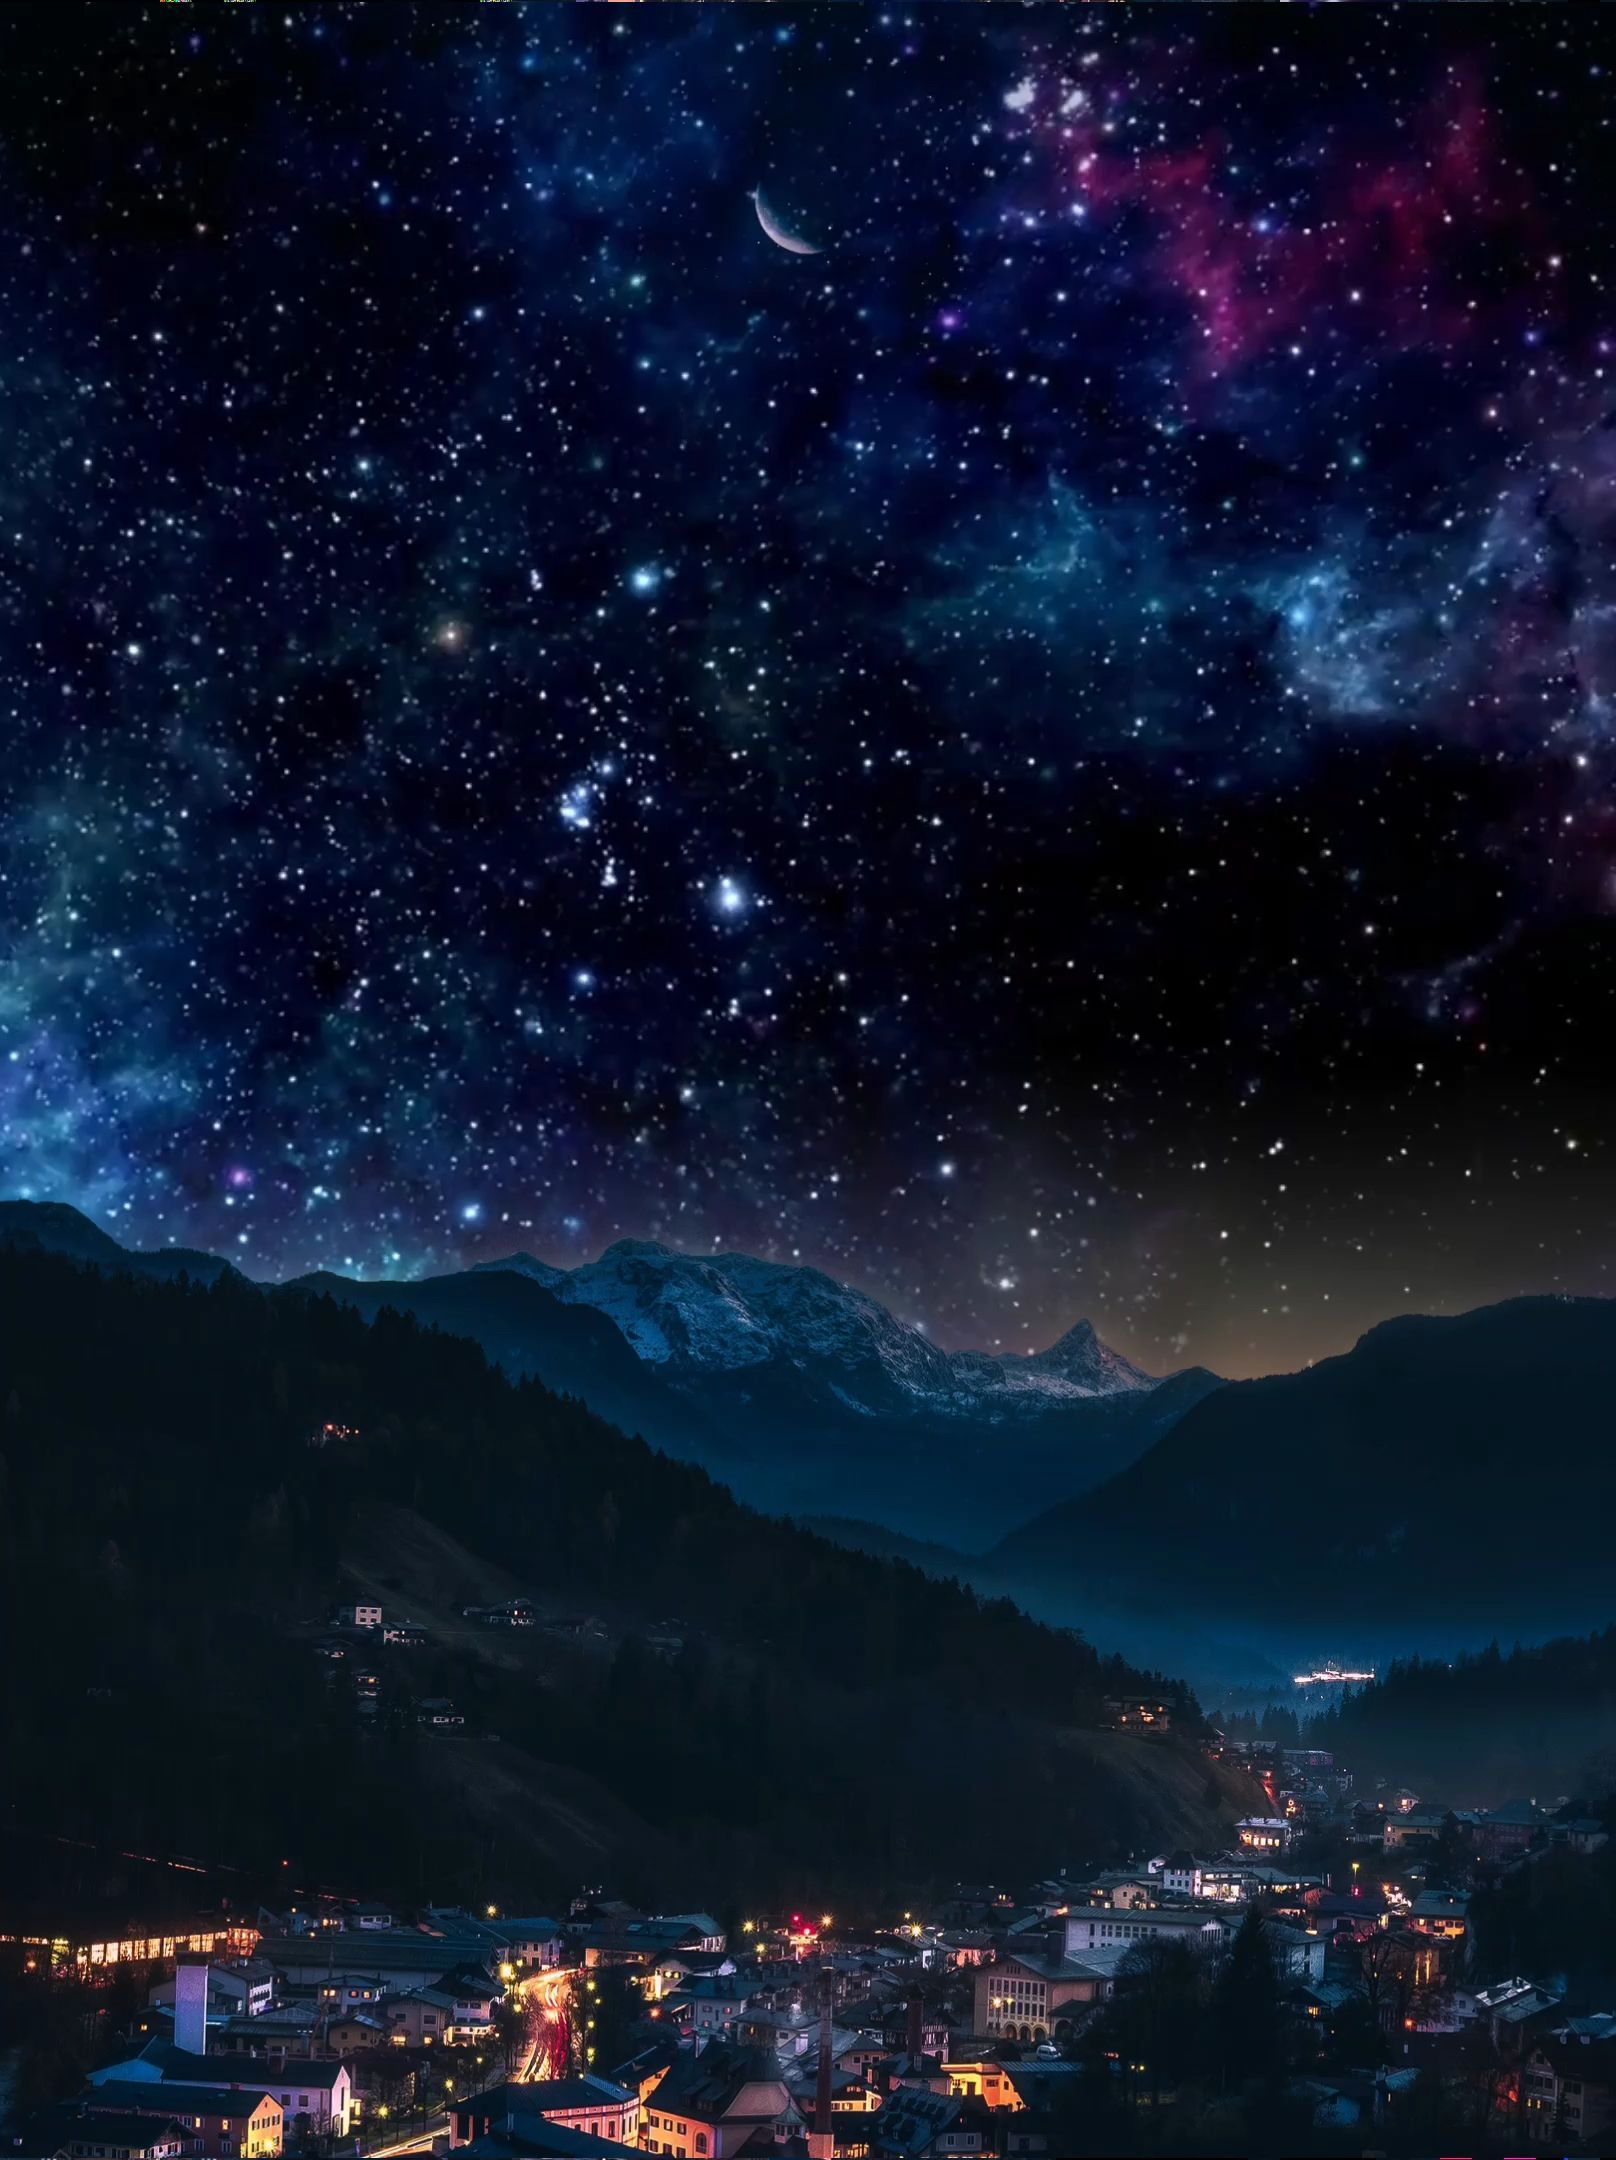 Animation Animations Live Wallpaper Small Town Night Sky Wallpaper Anime Backgrounds Wallpapers Live Wallpaper Iphone Galaxy wallpaper live photo